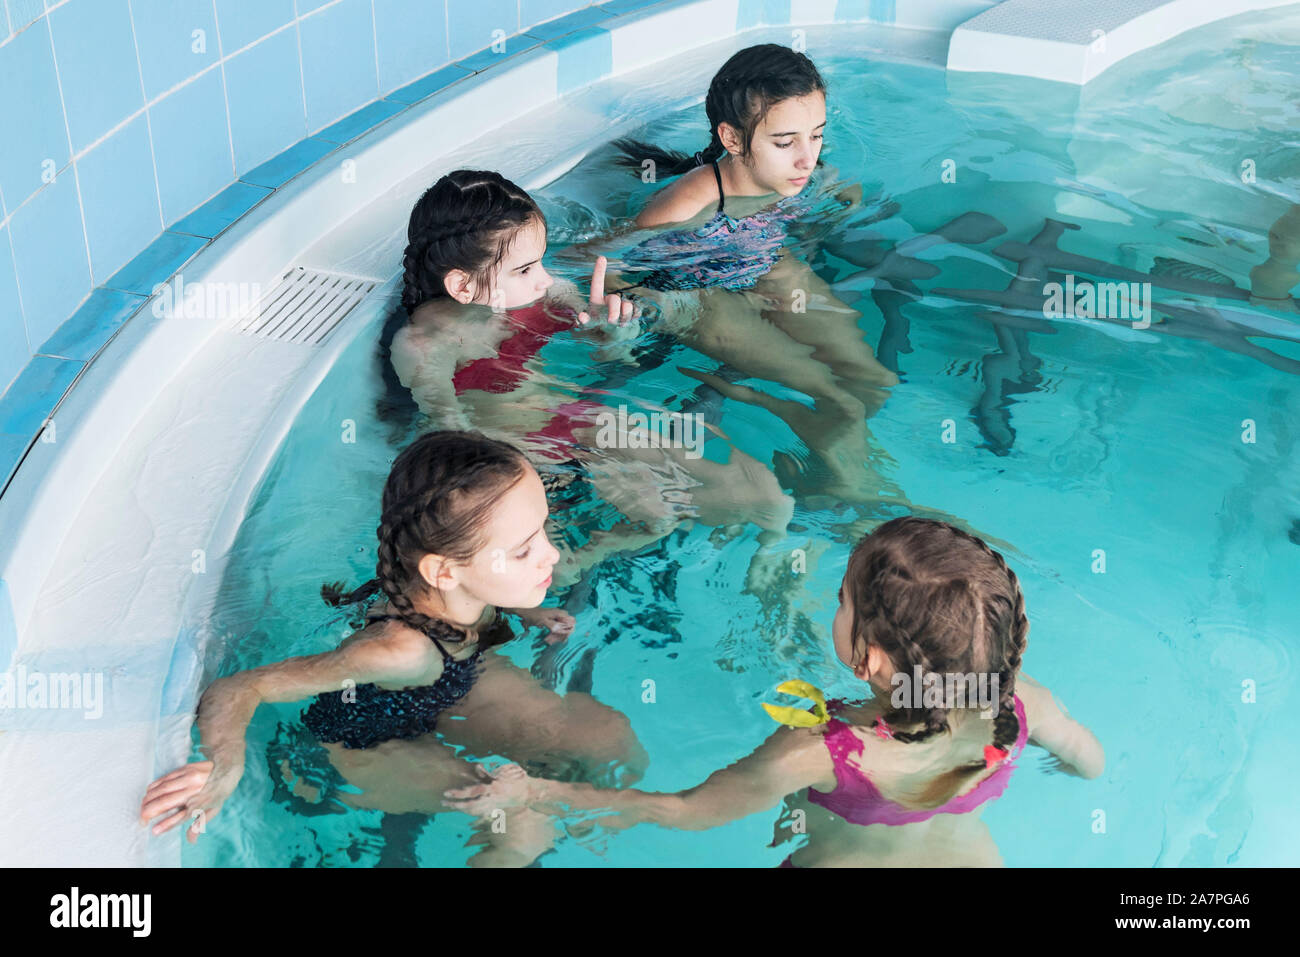 Girls swim in the pool. Happy girls play in the pool.Beautiful girls swim and having fun in water.Active holiday. Stock Photo